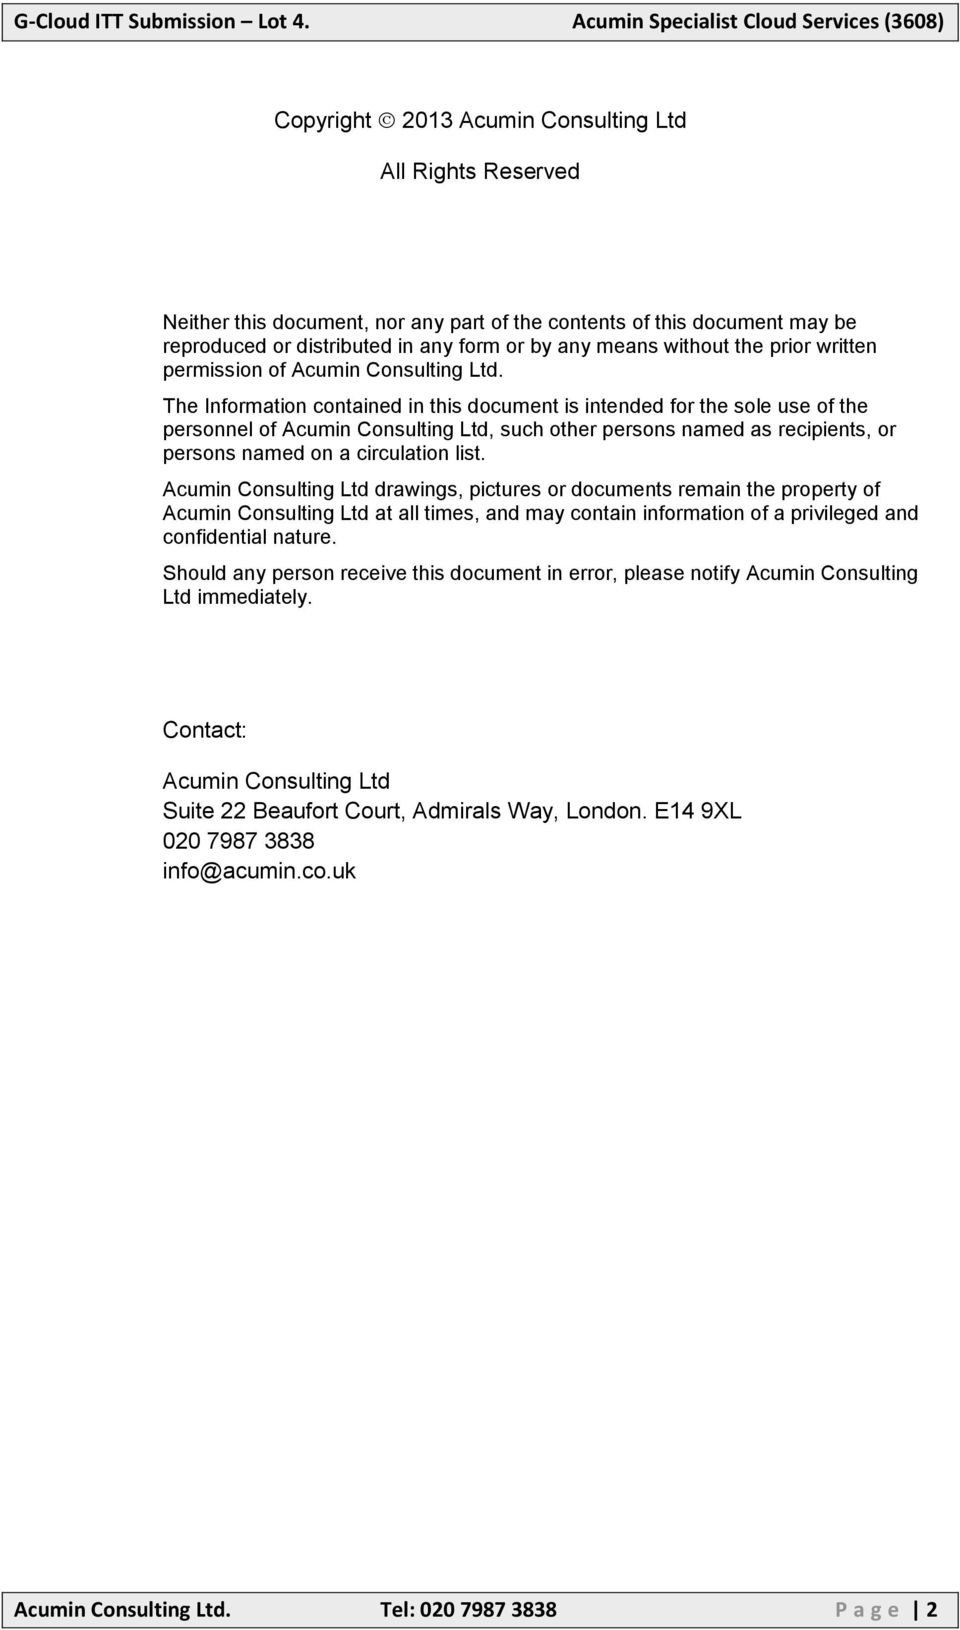 The Information contained in this document is intended for the sole use of the personnel of Acumin Consulting Ltd, such other persons named as recipients, or persons named on a circulation list.